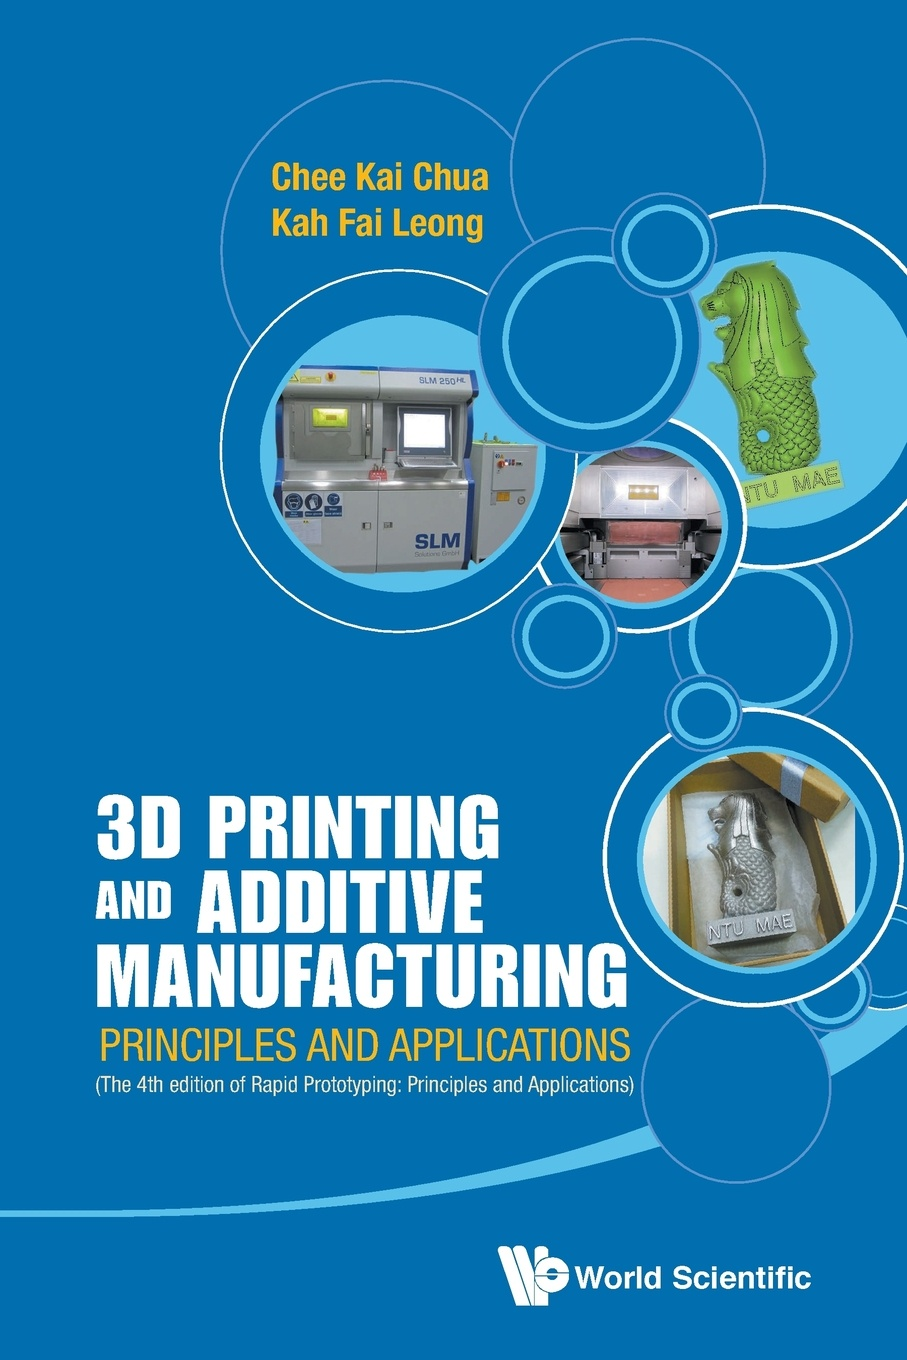 Chee Kai Chua, Kah Fai Leong 3D PRINTING AND ADDITIVE MANUFACTURING. PRINCIPLES AND APPLICATIONS (WITH COMPANION MEDIA PACK) - FOURTH EDITION OF RAPID PROTOTYPING